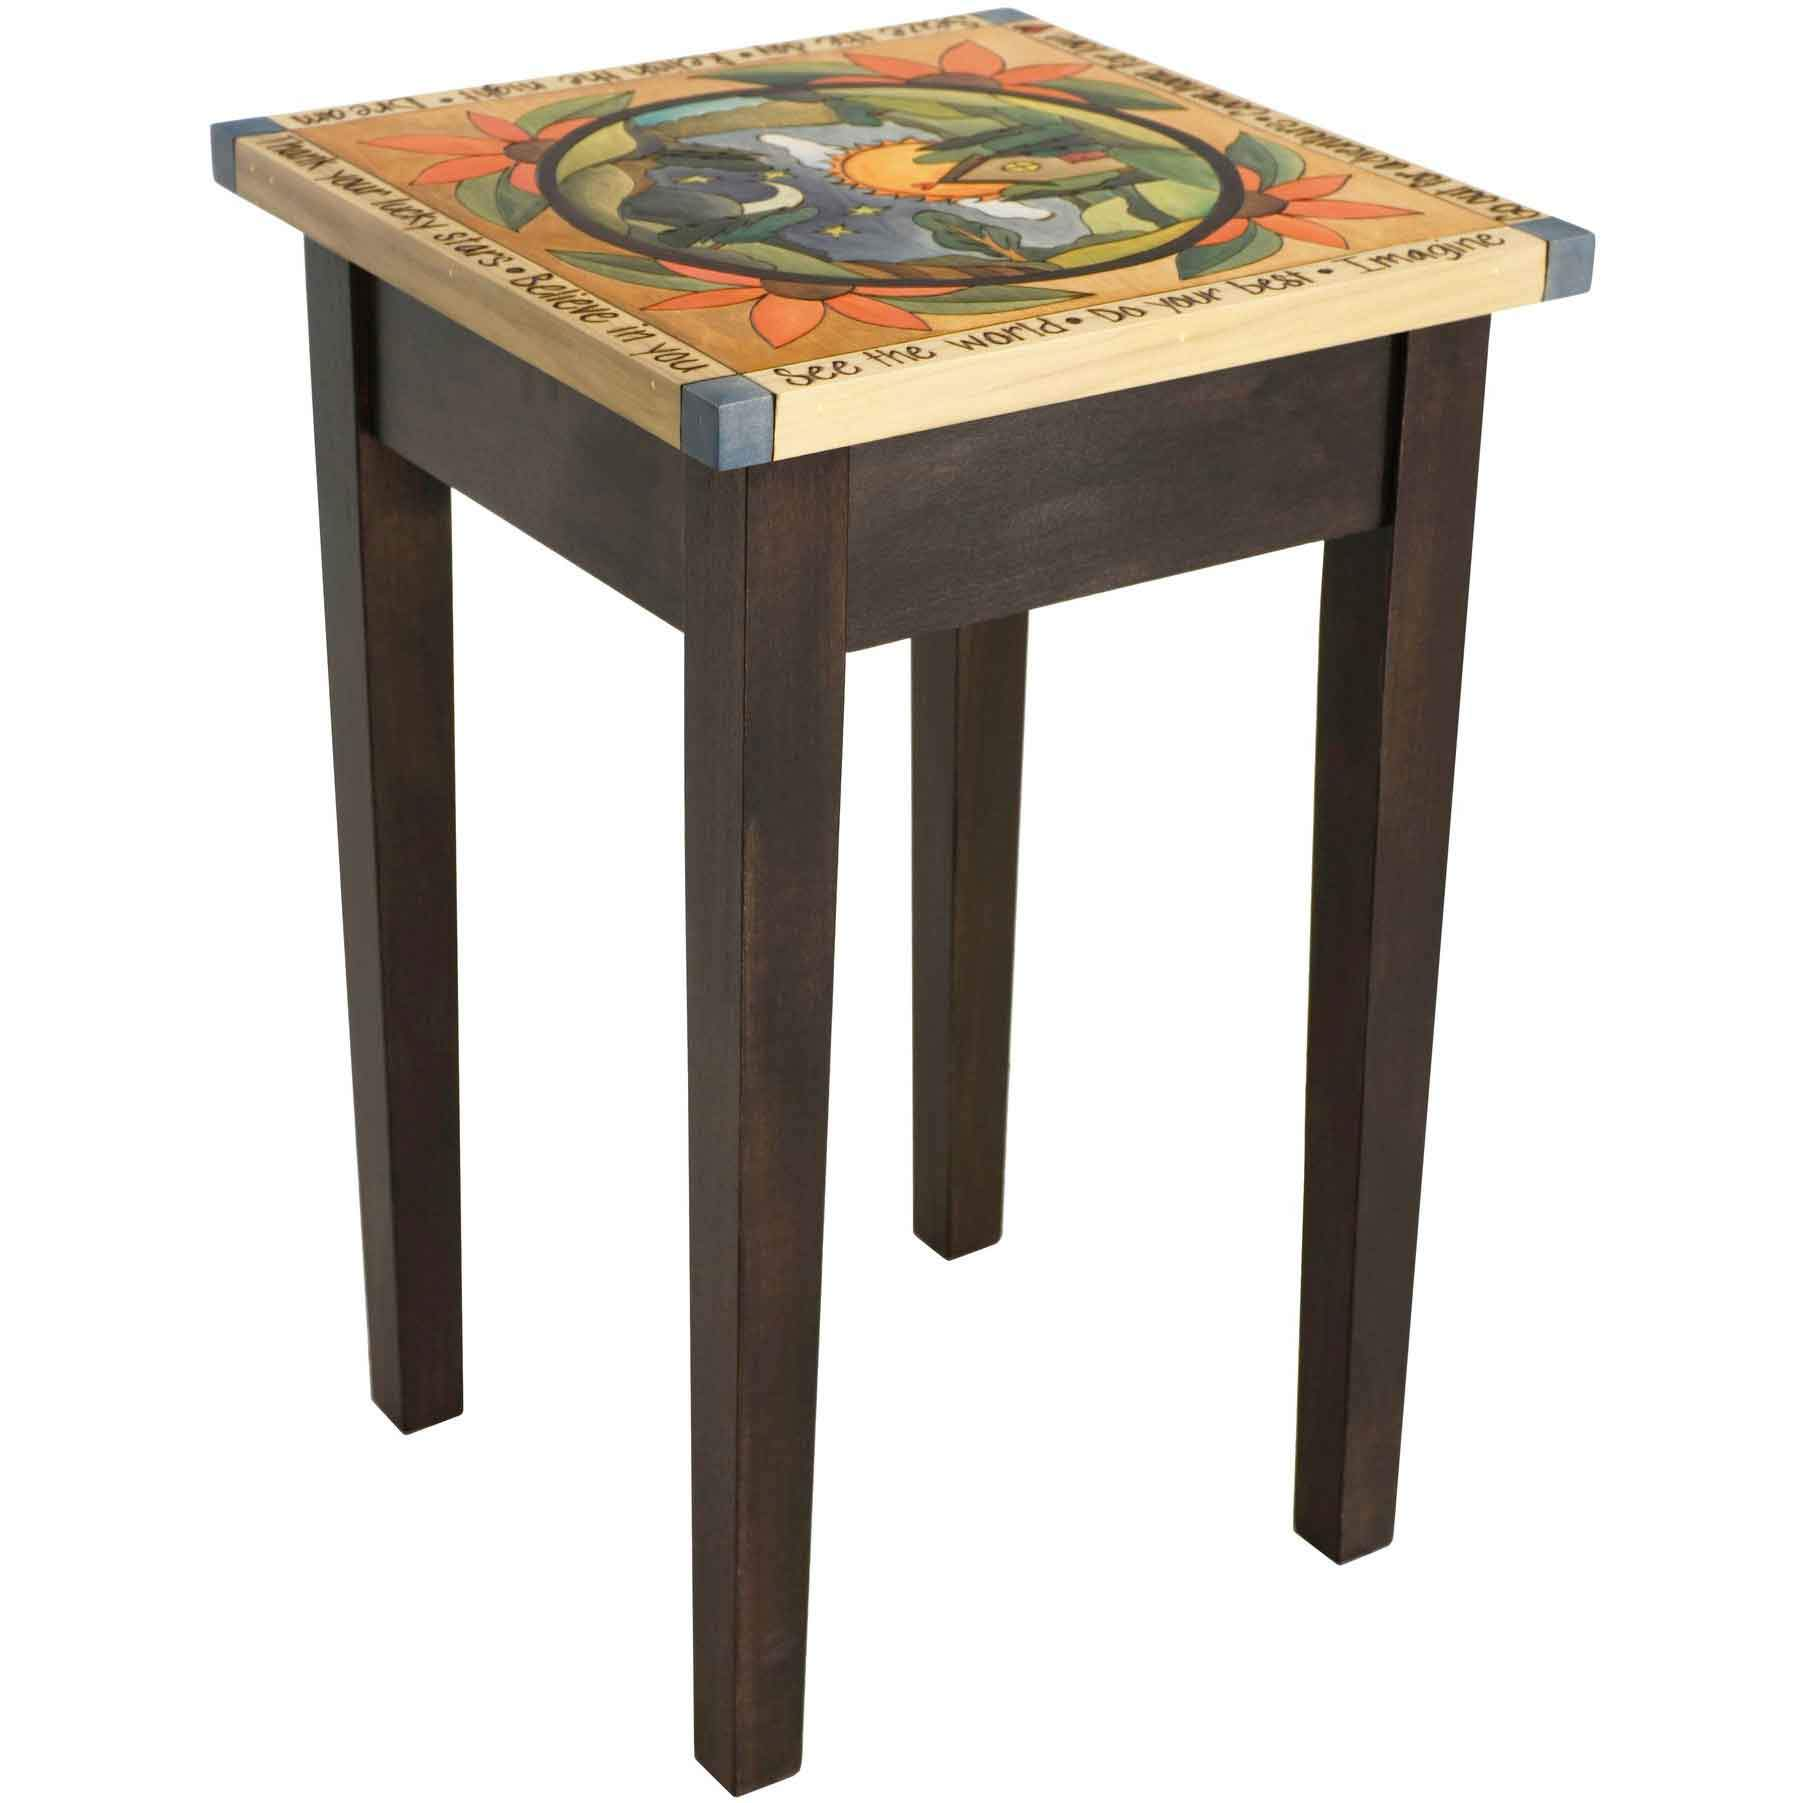 Sticks Small Square End Table End016 00711 Artistic Artisan Designer End Tables Sweetheart Gallery Contemporary Craft Gallery Fine American Craft Art Design Handmade Home Personal Accessories